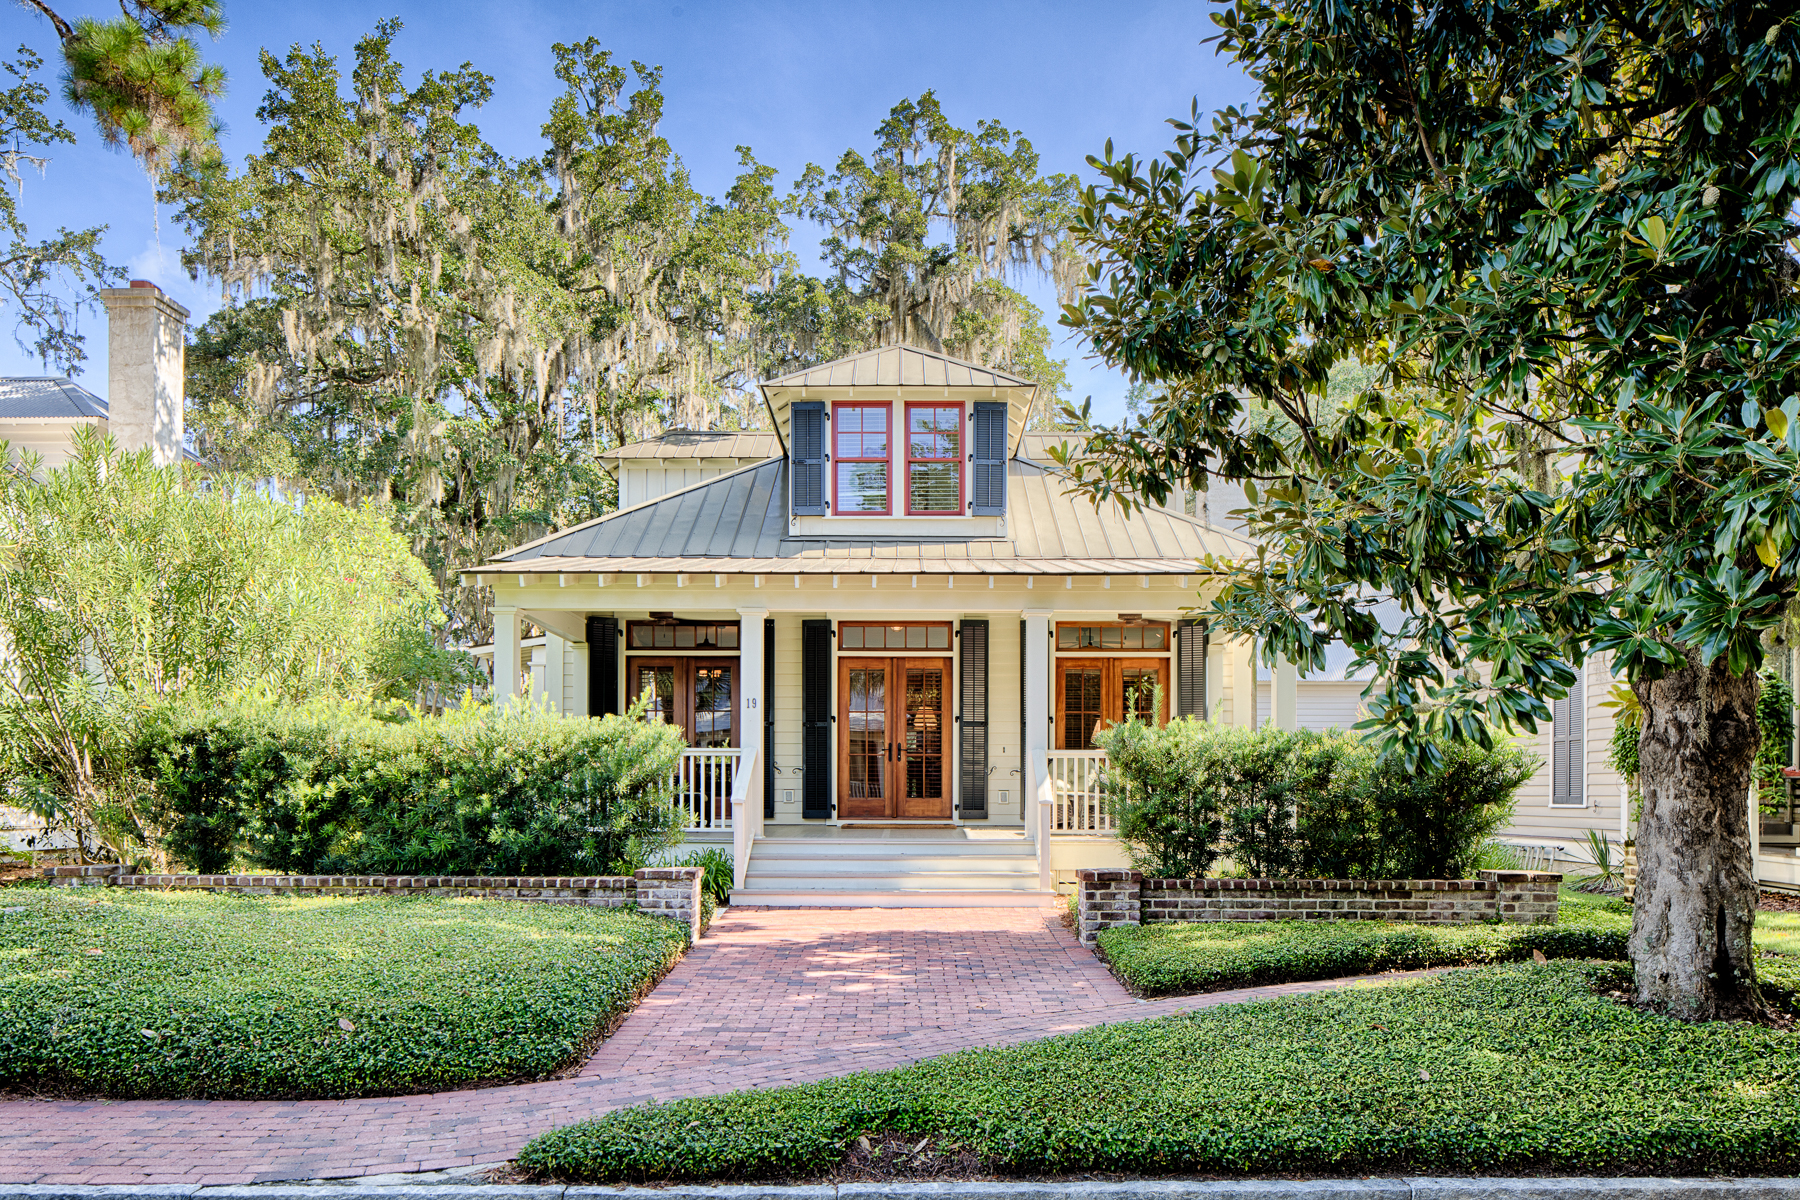 Single Family Home for Sale at Palmetto Bluff 19 South Drayton Street, Bluffton, South Carolina 29910 United States